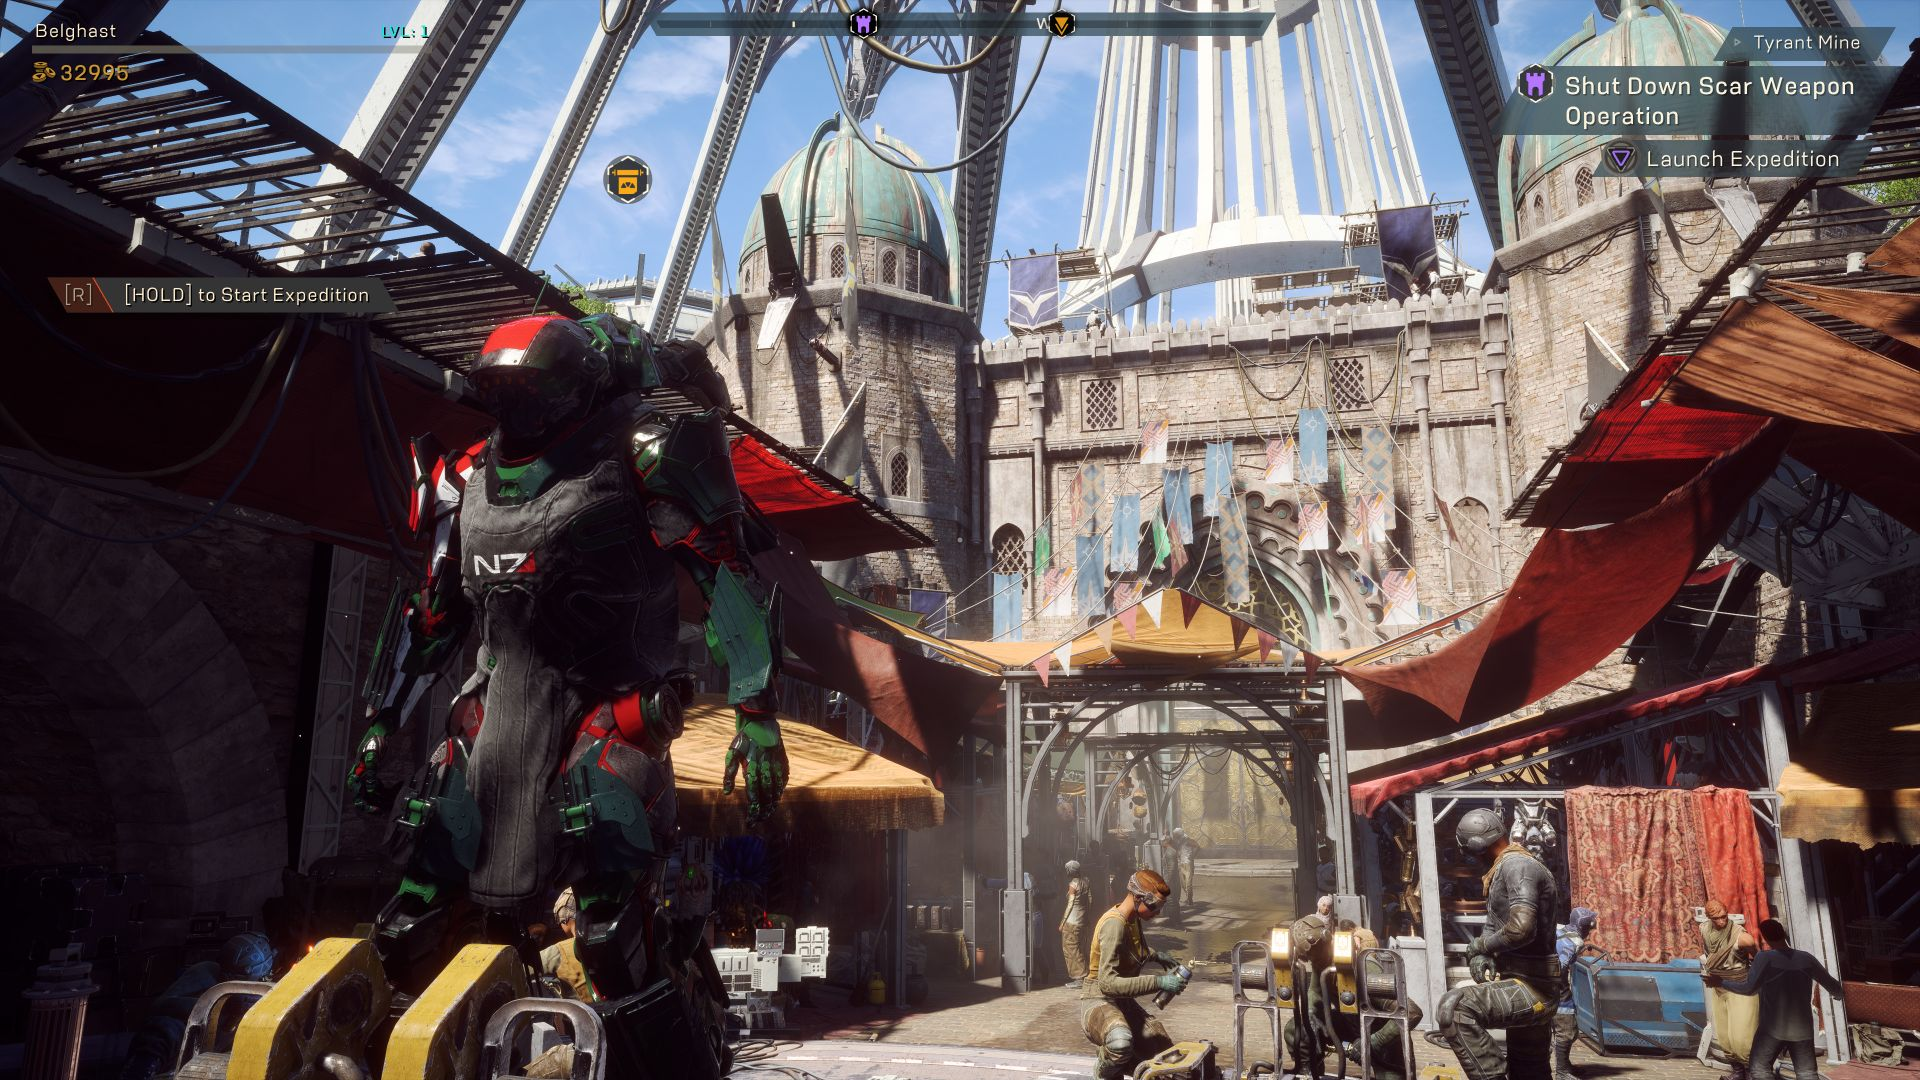 anthem-screenshot-2019-03-21-08-28-04-100